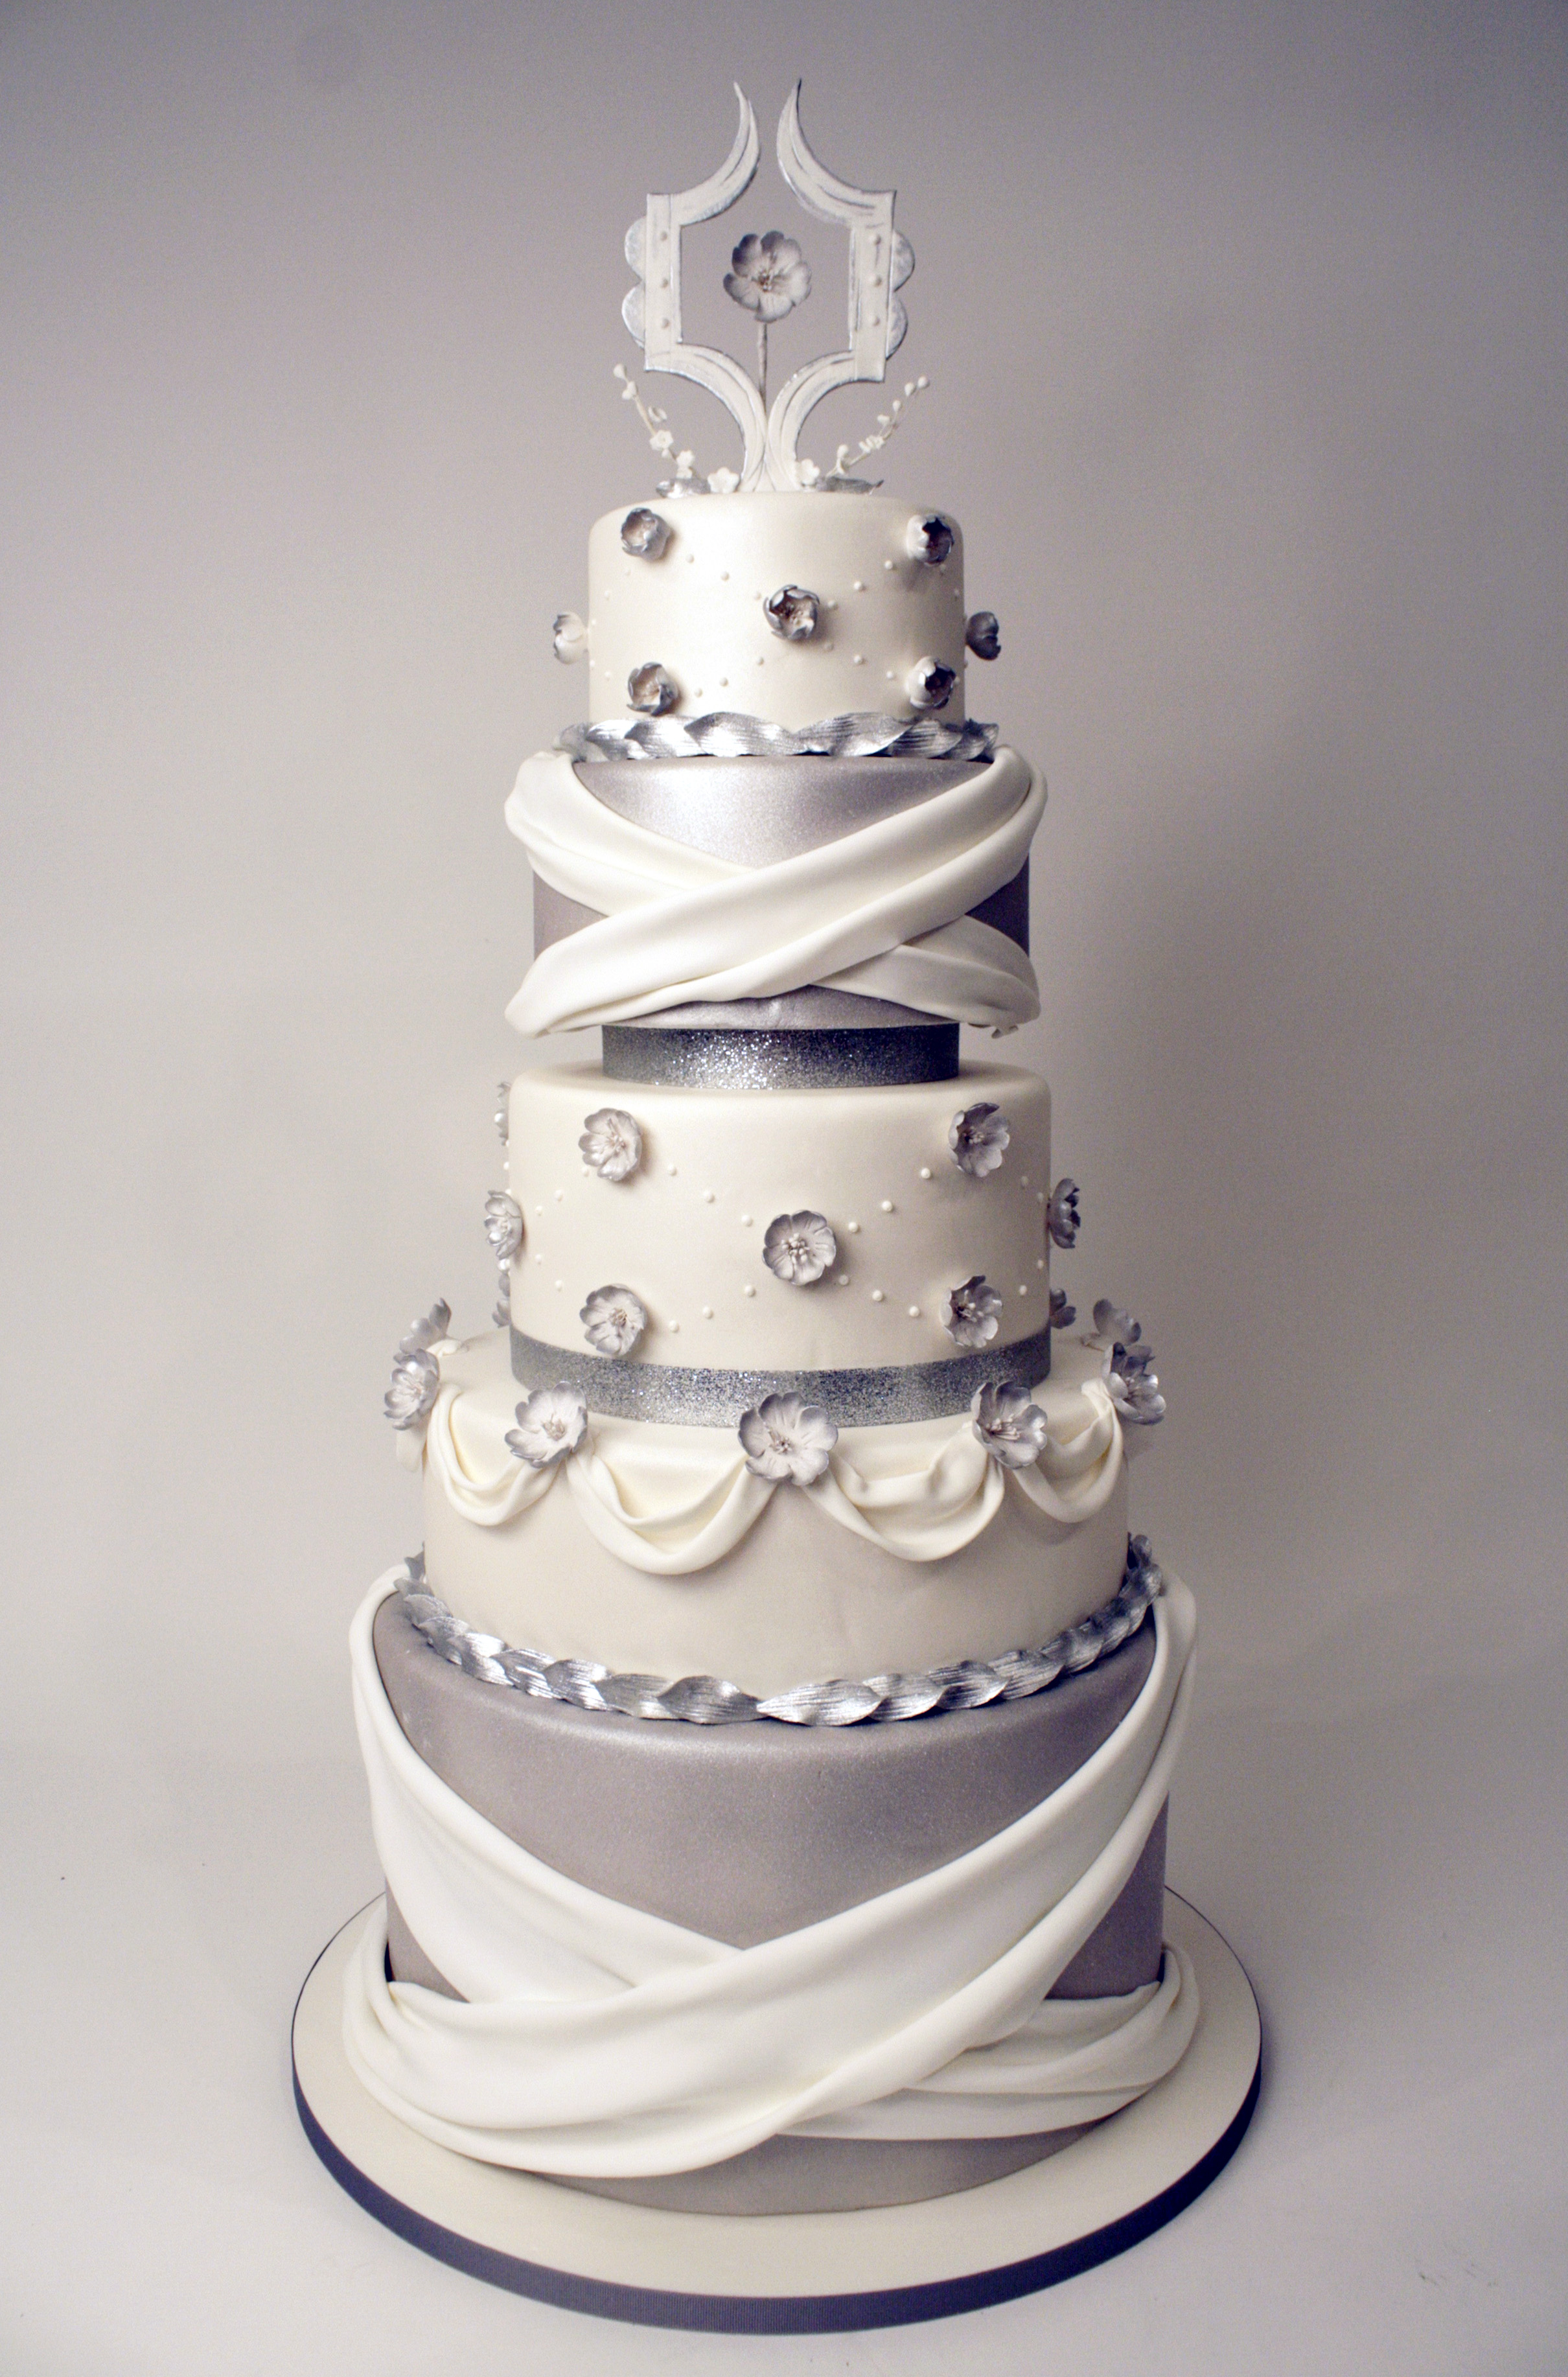 The Art To Cake Design For Your Baltimore Wedding Partyspace